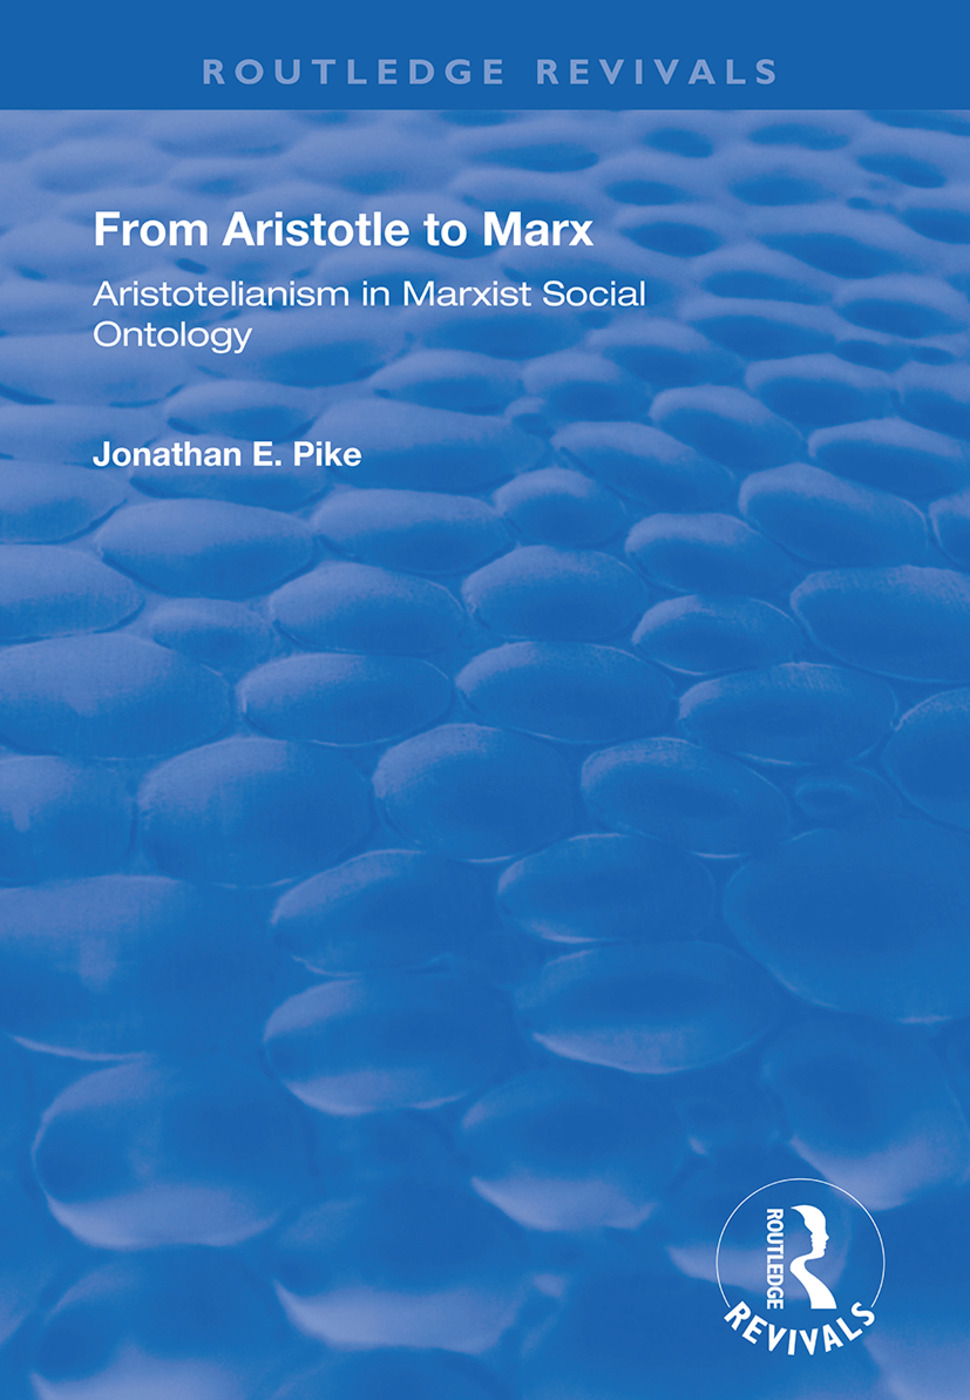 From Aristotle to Marx: Aristotelianism in Marxist Social Ontology book cover